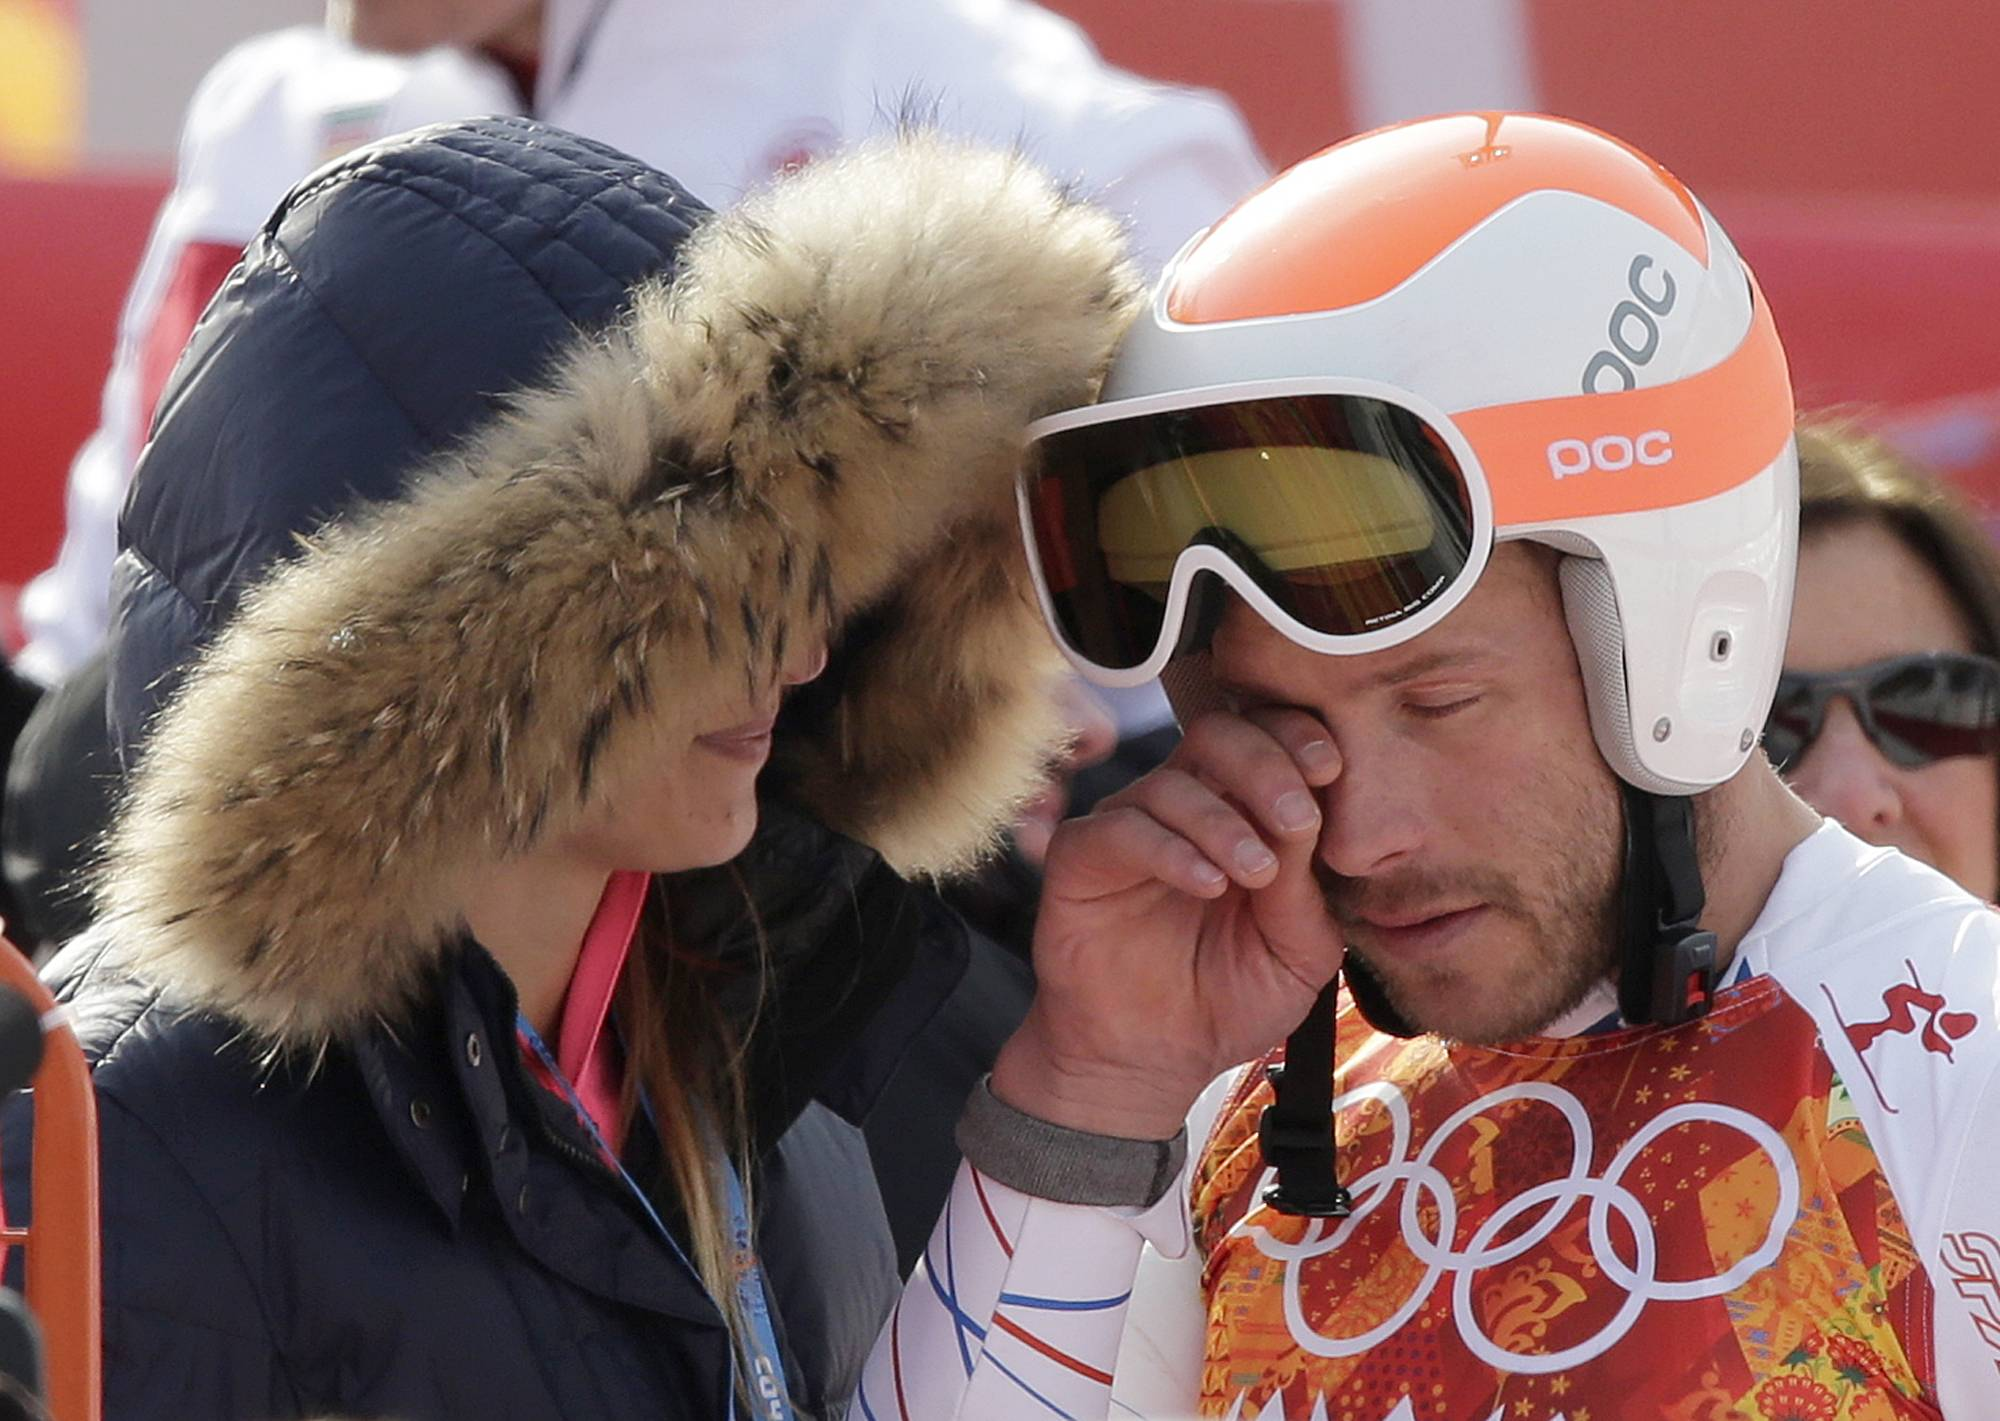 United States' Bode Miller wipes his face as he stands with his wife, Morgan, after finishing the men's super-G at the Sochi 2014 Winter Olympics, Sunday, Feb. 16, 2014, in Krasnaya Polyana, Russia.